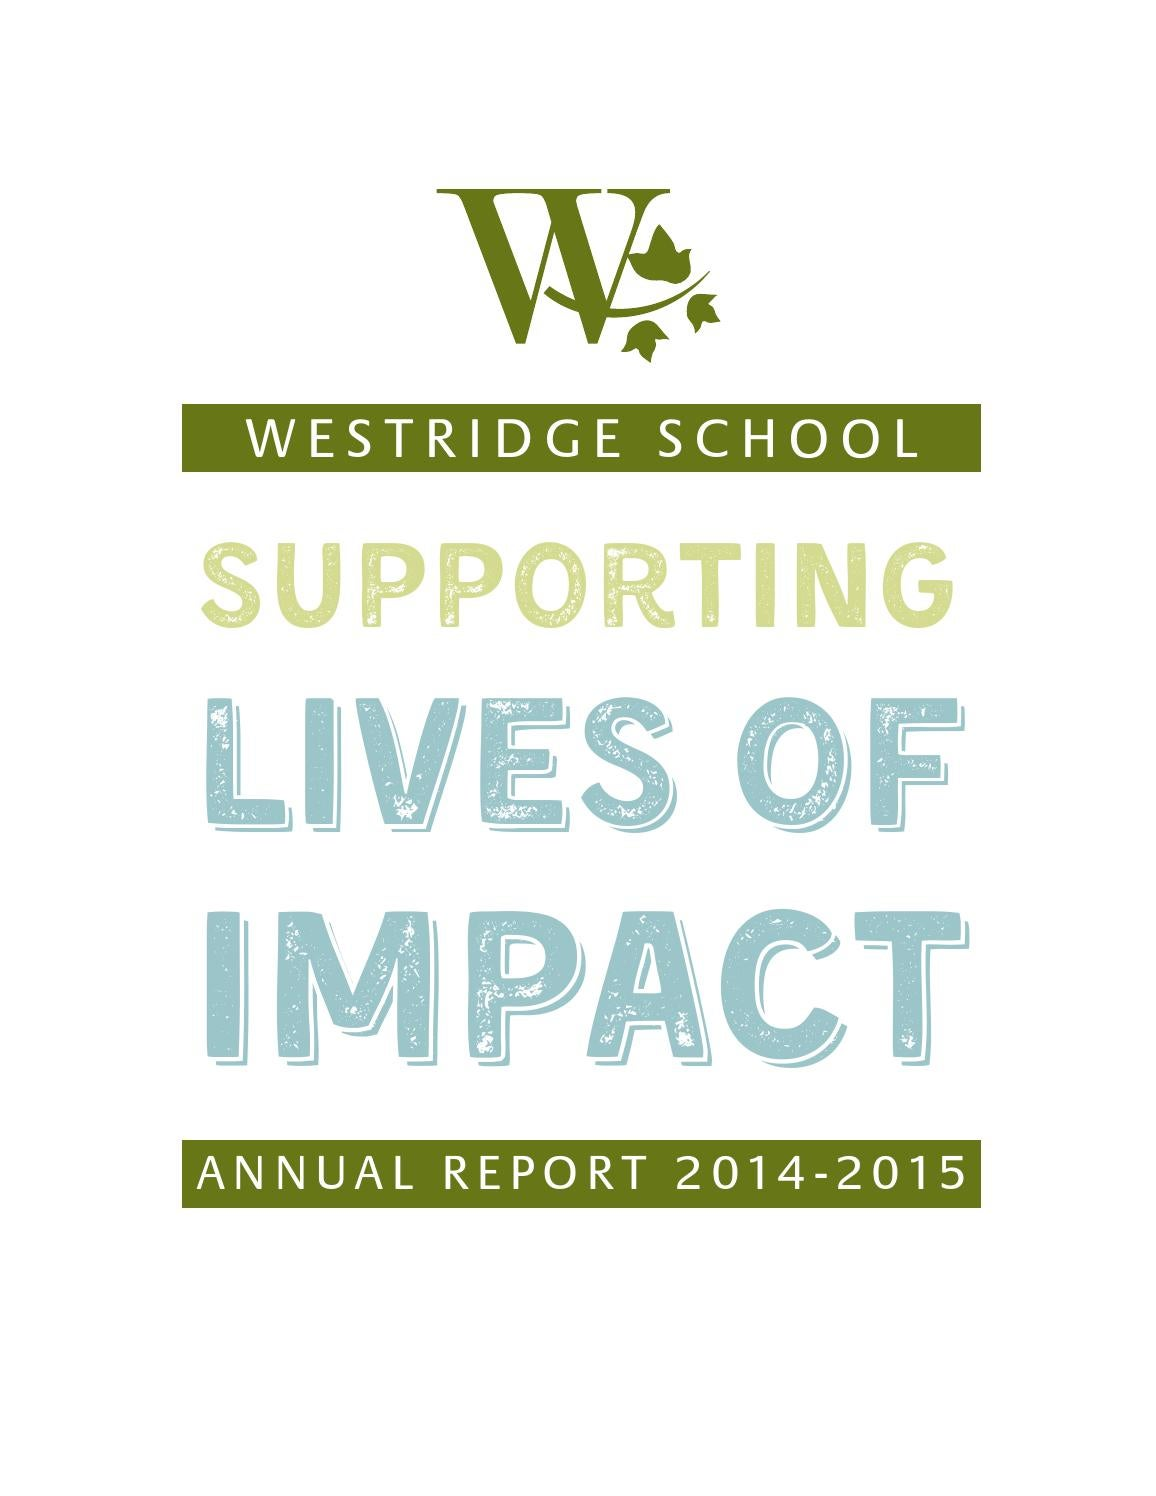 2014 2015 Annual Report By Westridge School Issuu